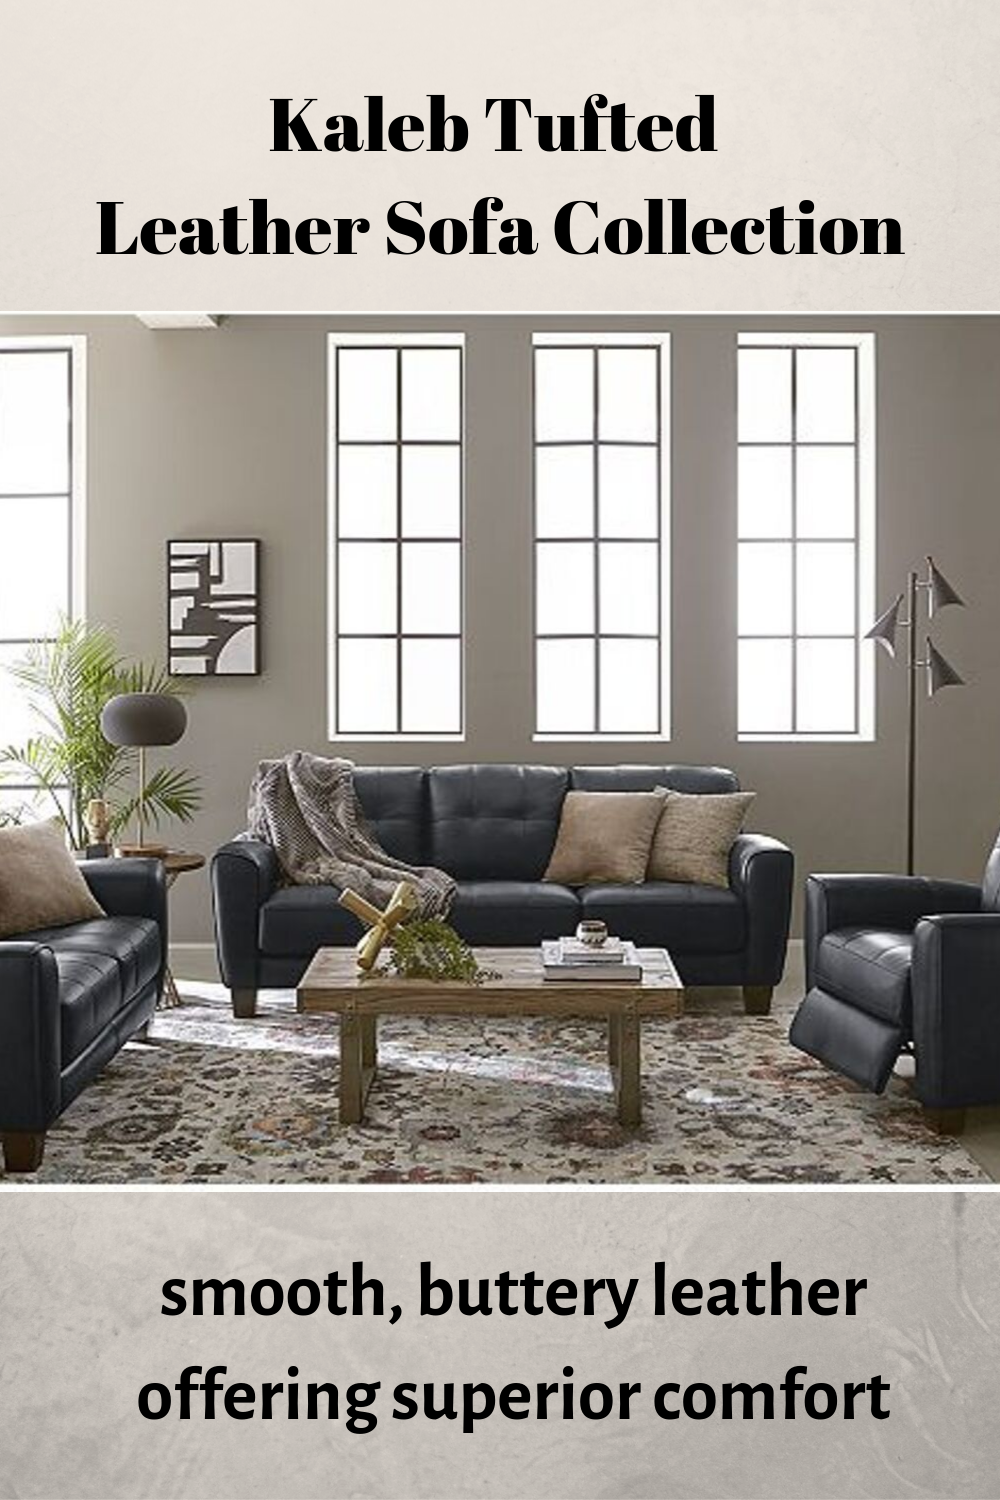 Furniture Kaleb Tufted Leather Sofa Collection Created For Macy S Reviews Furniture Macy S Tufted Leather Sofa Leather Sofa Tufted Leather #tufted #leather #living #room #set